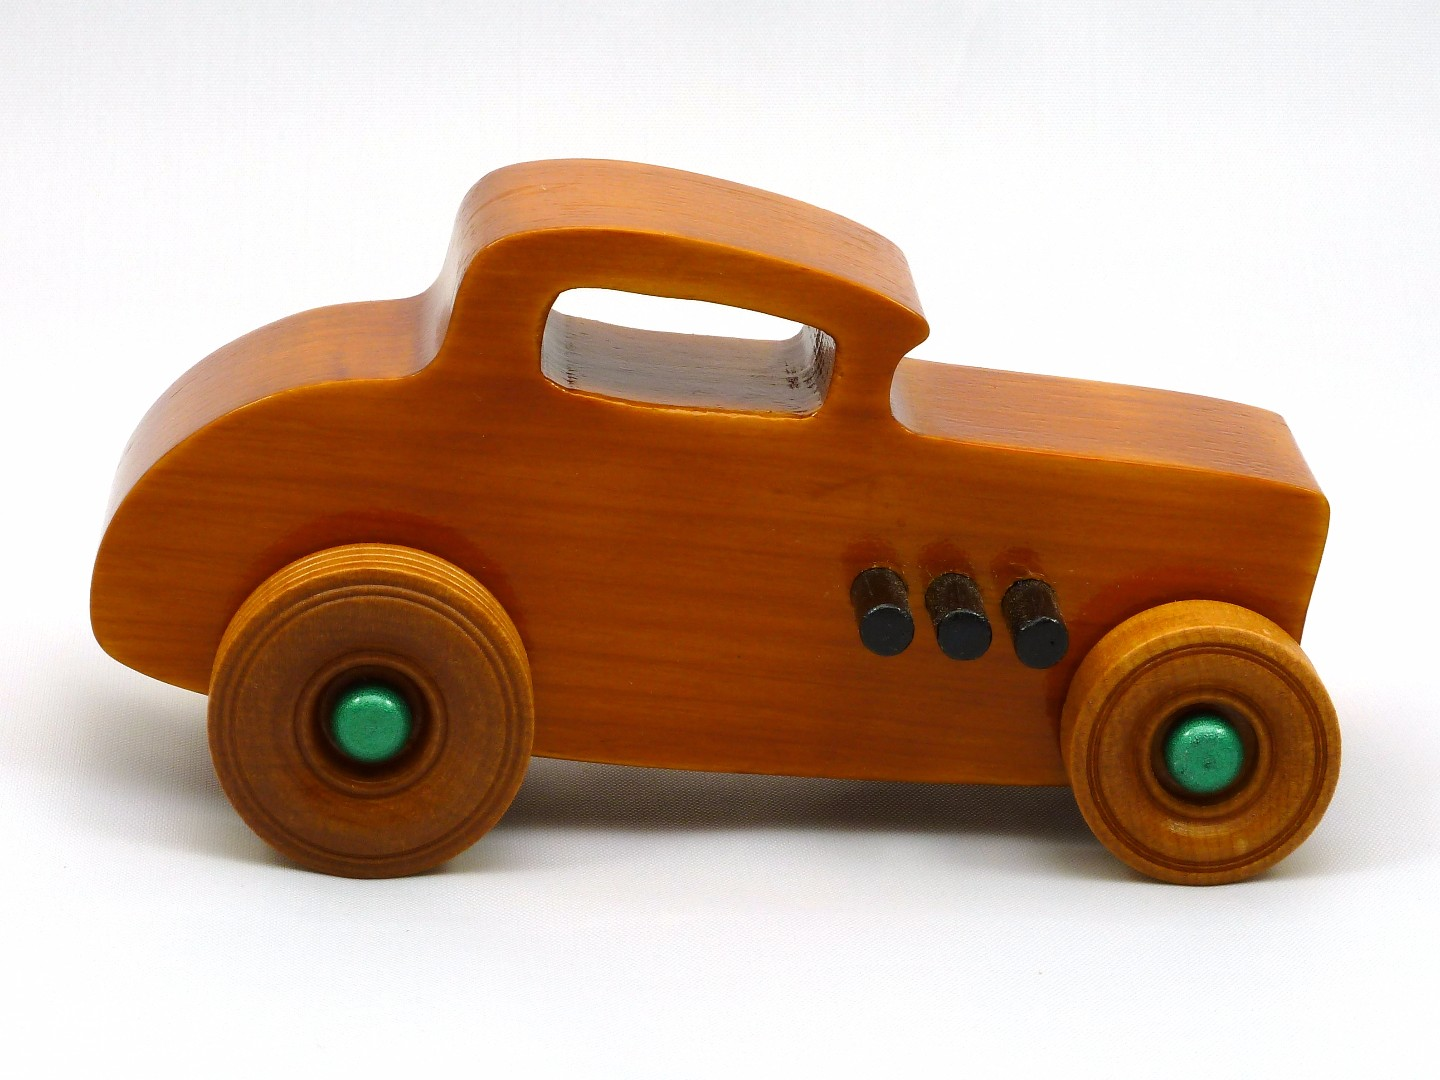 20170902-134409 Wooden Toy Car - Hot Rod Freaky Ford - 32 Deuce Coupe - Pine - Amber Shellac - Metallic Green.jpg